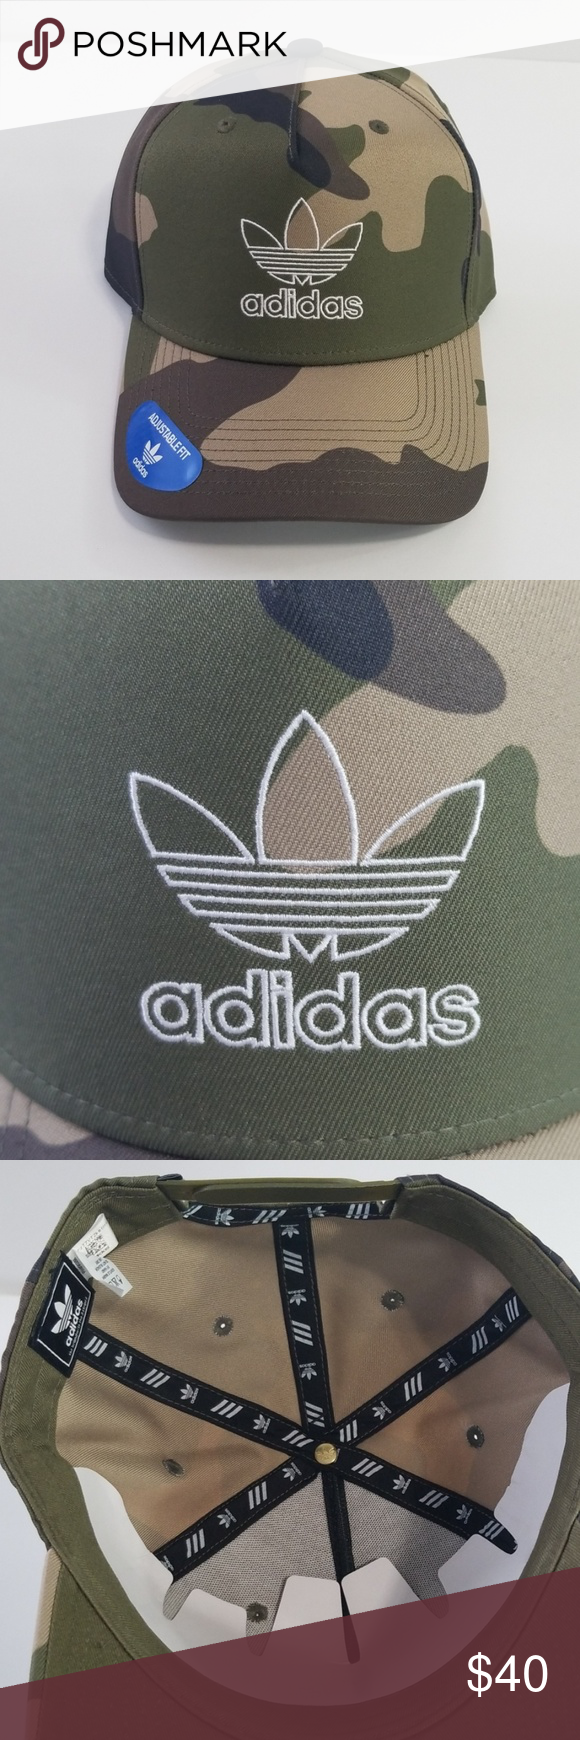 153dfa1005771 Adidas Originals Camo Snapback Hat Adidas Originals Adjustable Fit Snapback  New With Tags A94-A101 adidas Accessories Hats